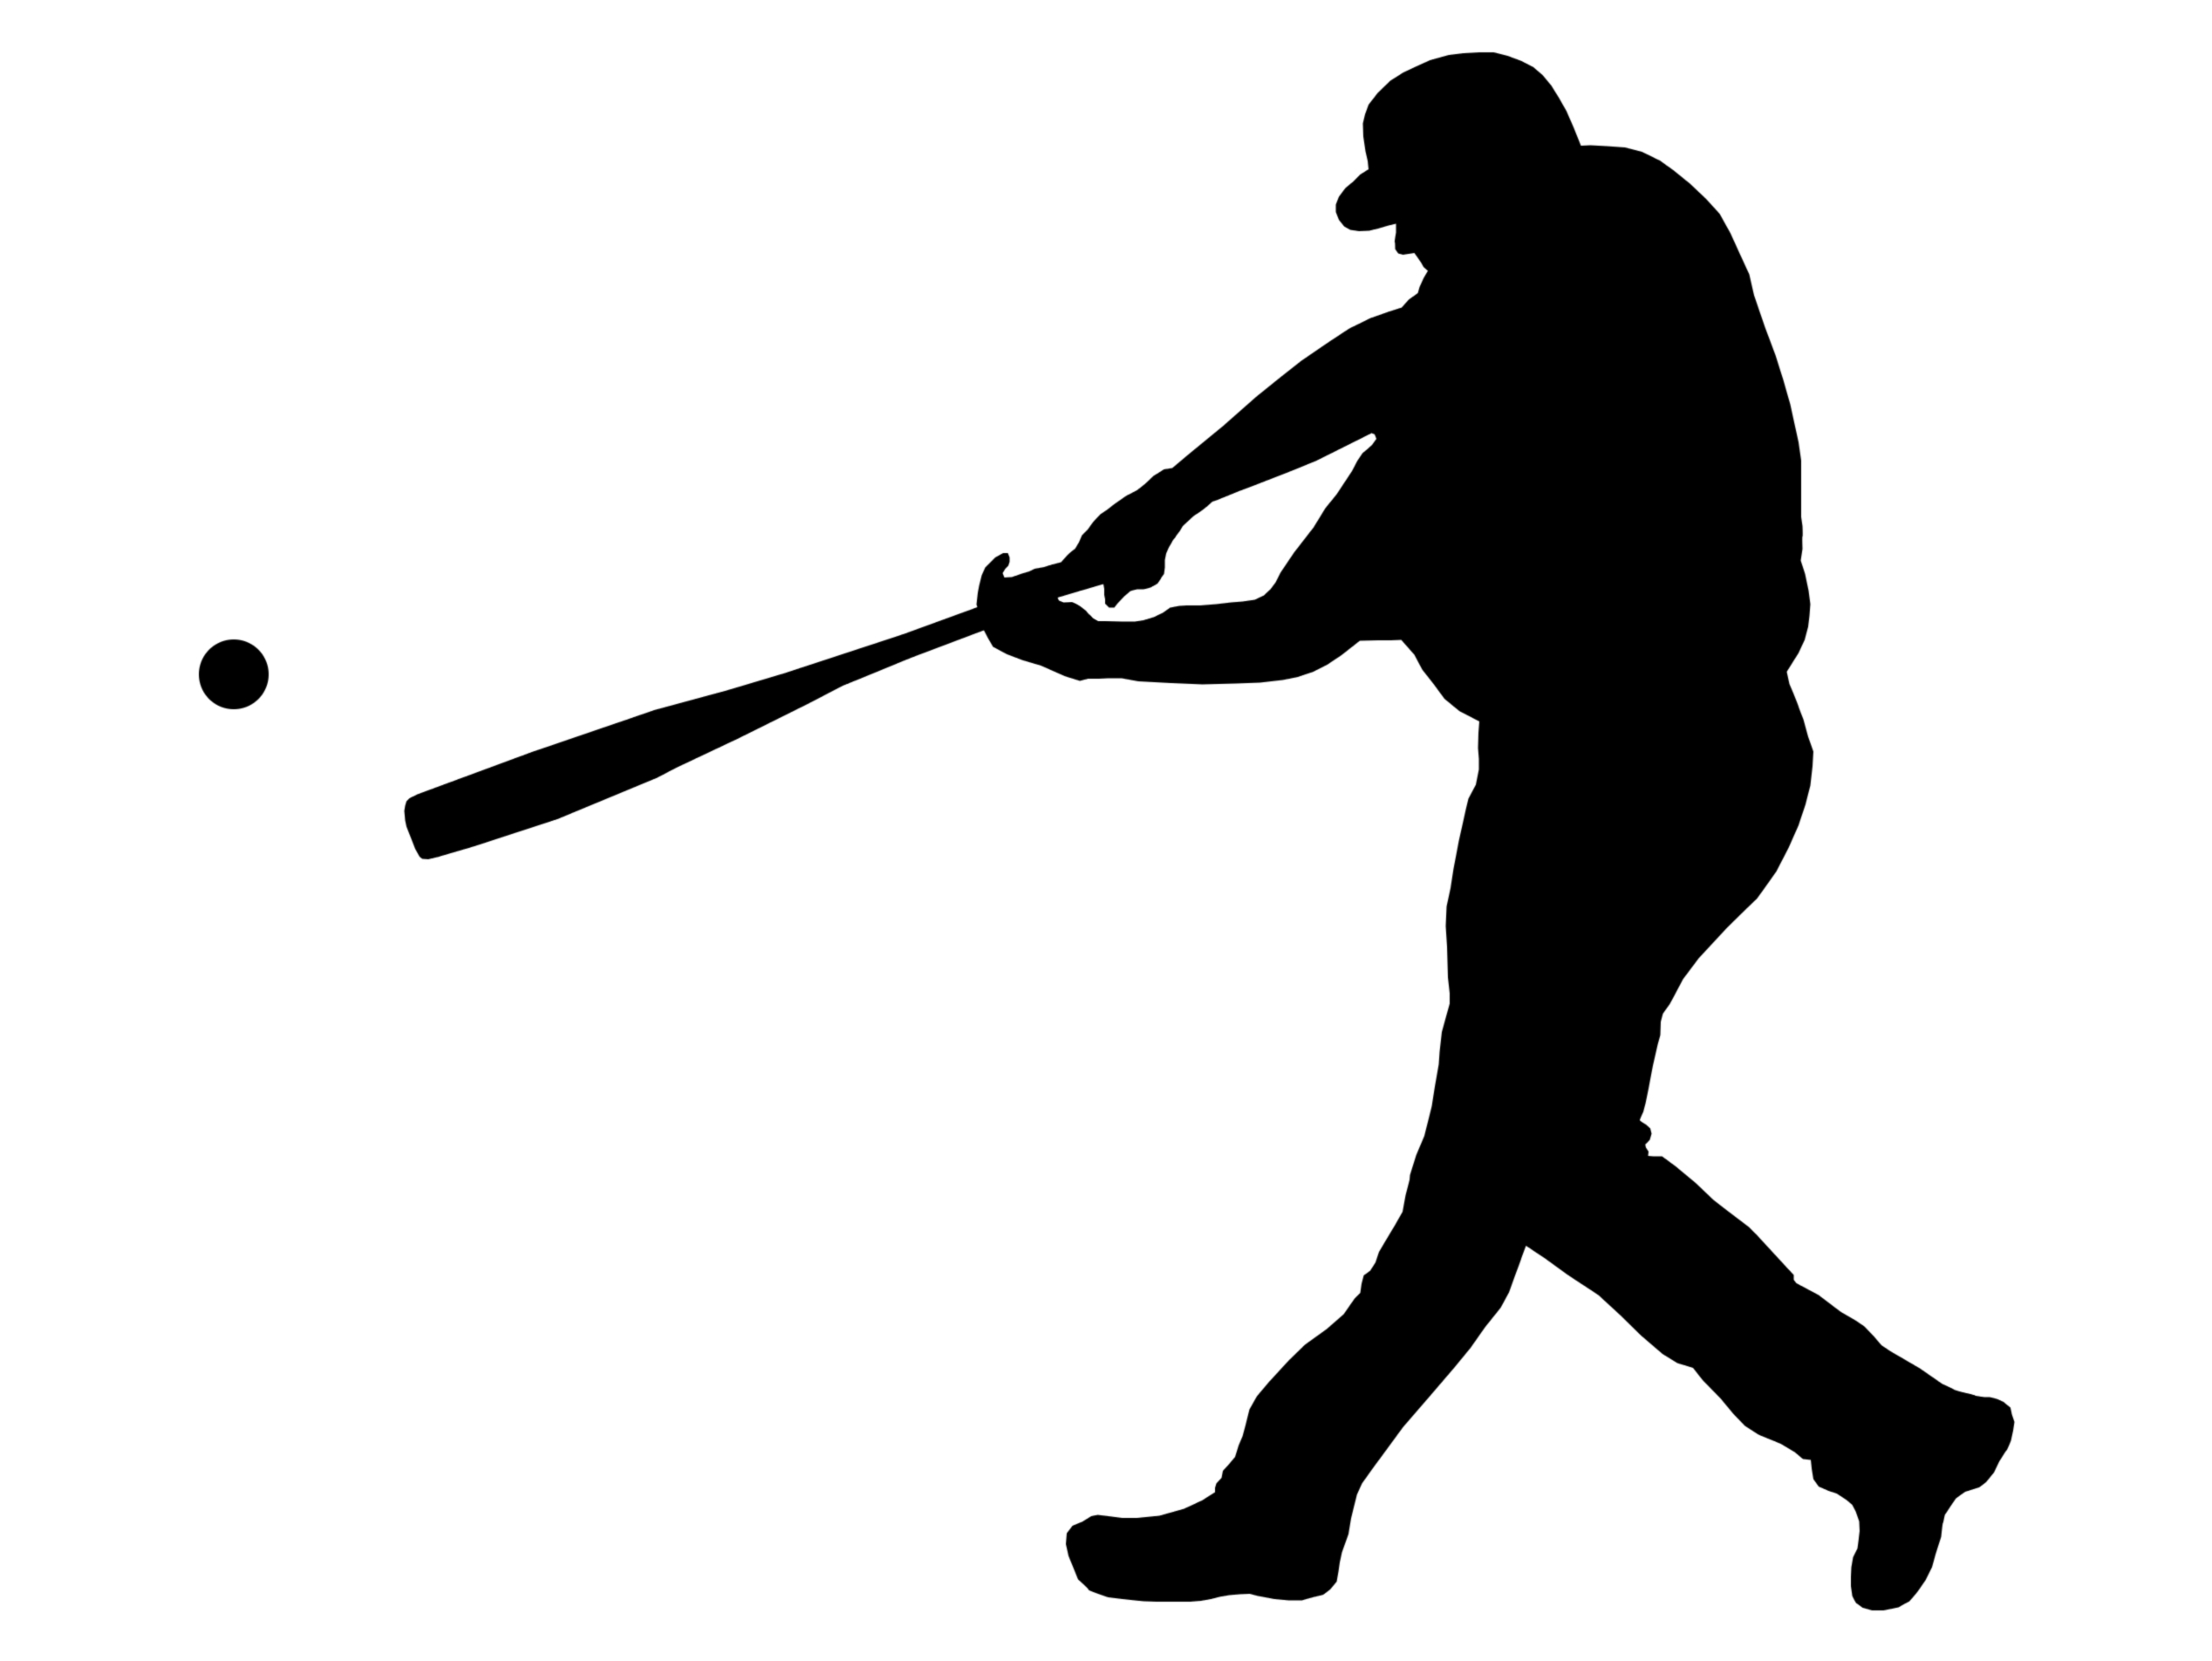 softball silhouette clip art at getdrawings com free for personal rh getdrawings com